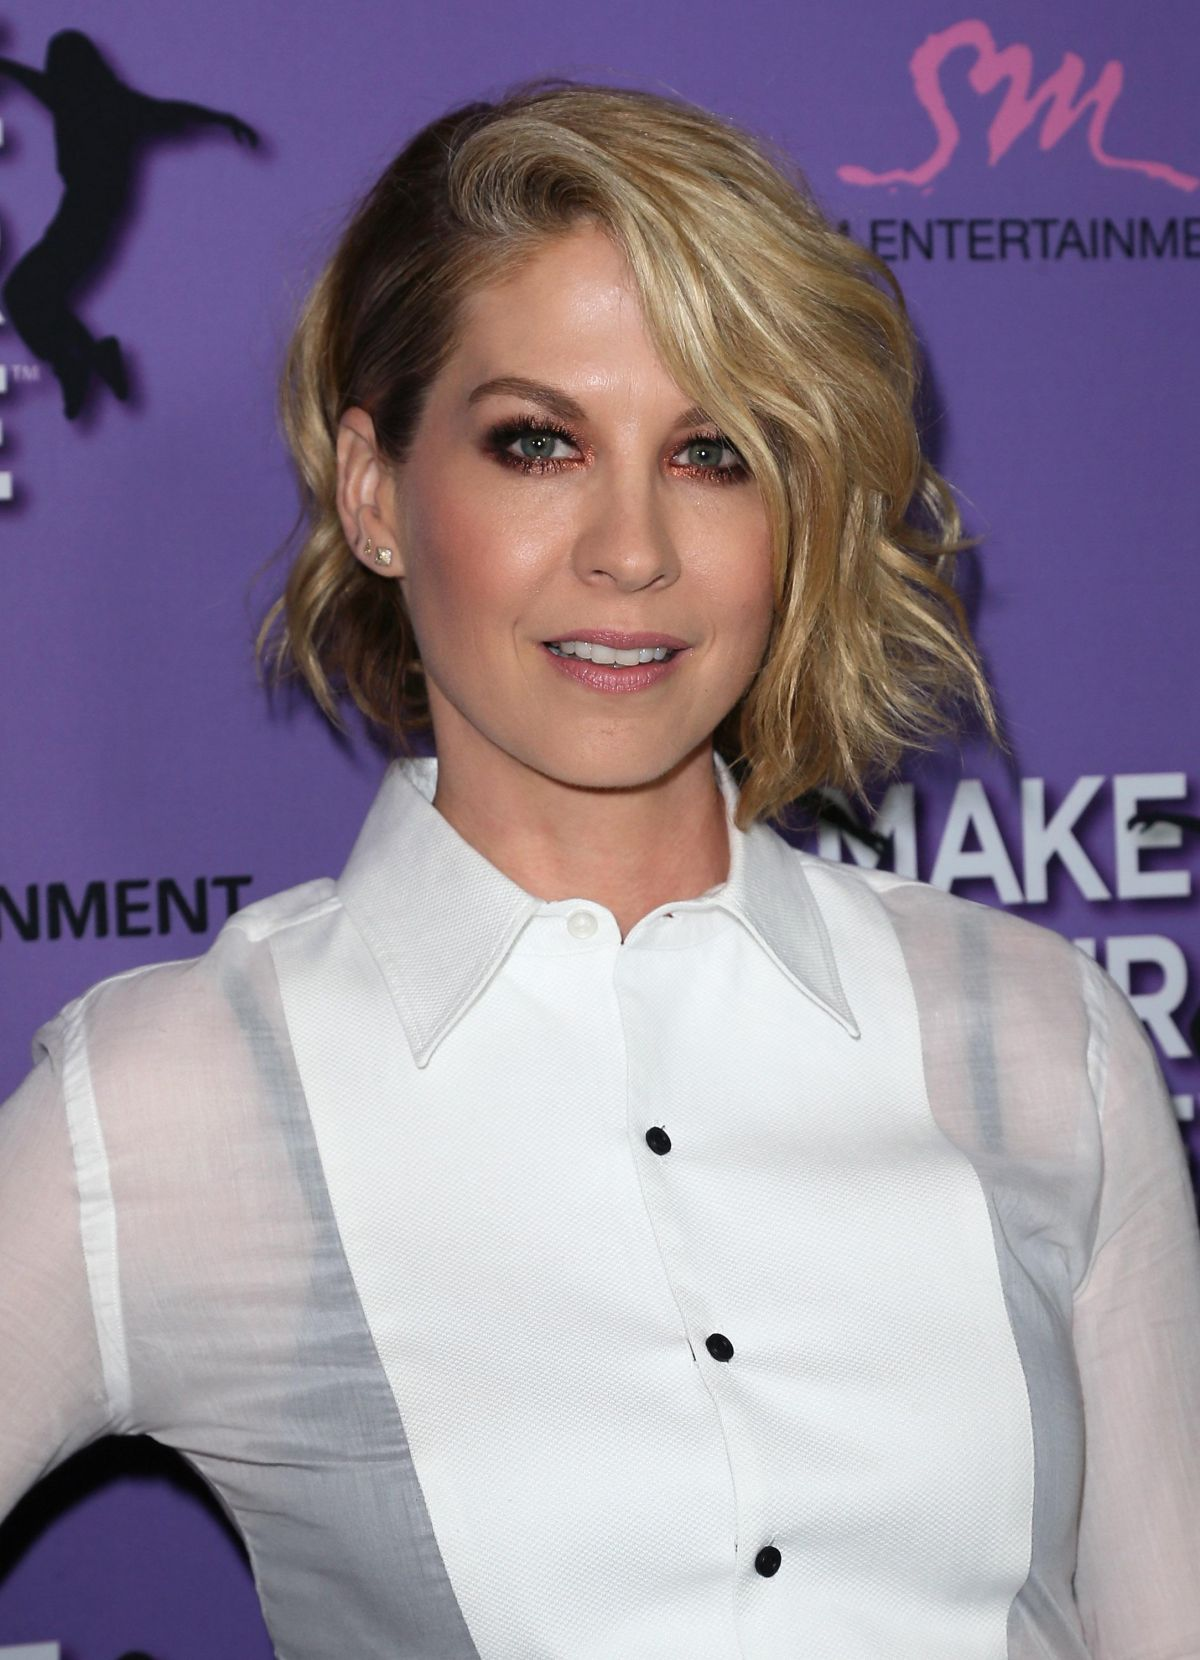 JENNA ELFMAN at Make Your Move Premiere in Los Angeles